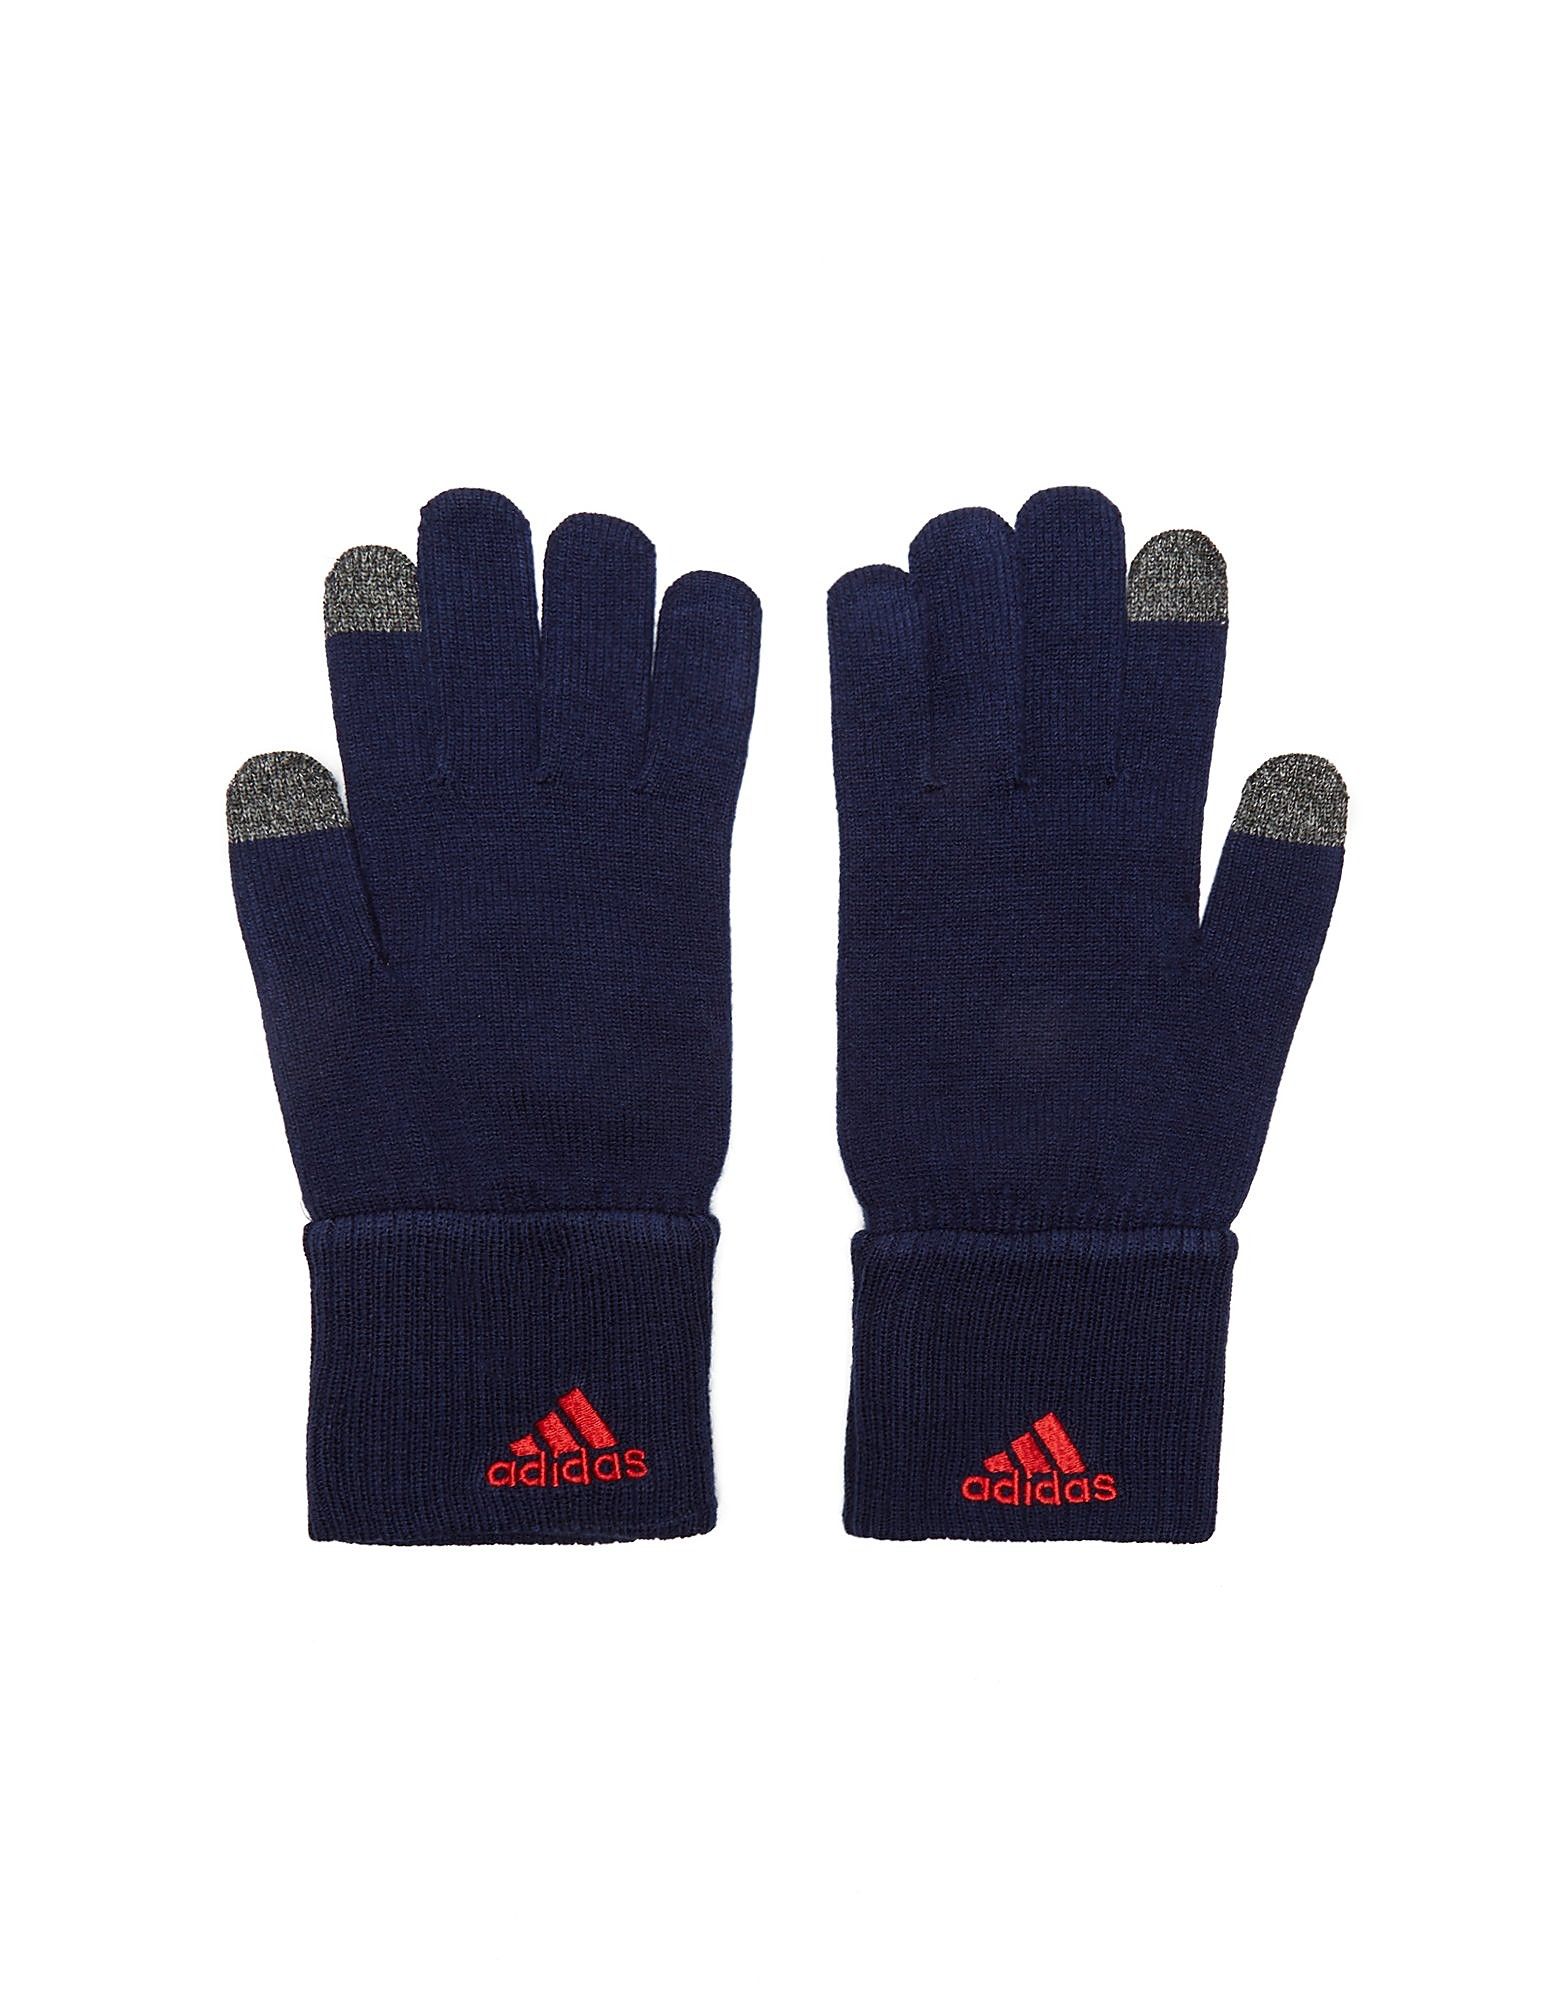 adidas Manchester United FC Gloves